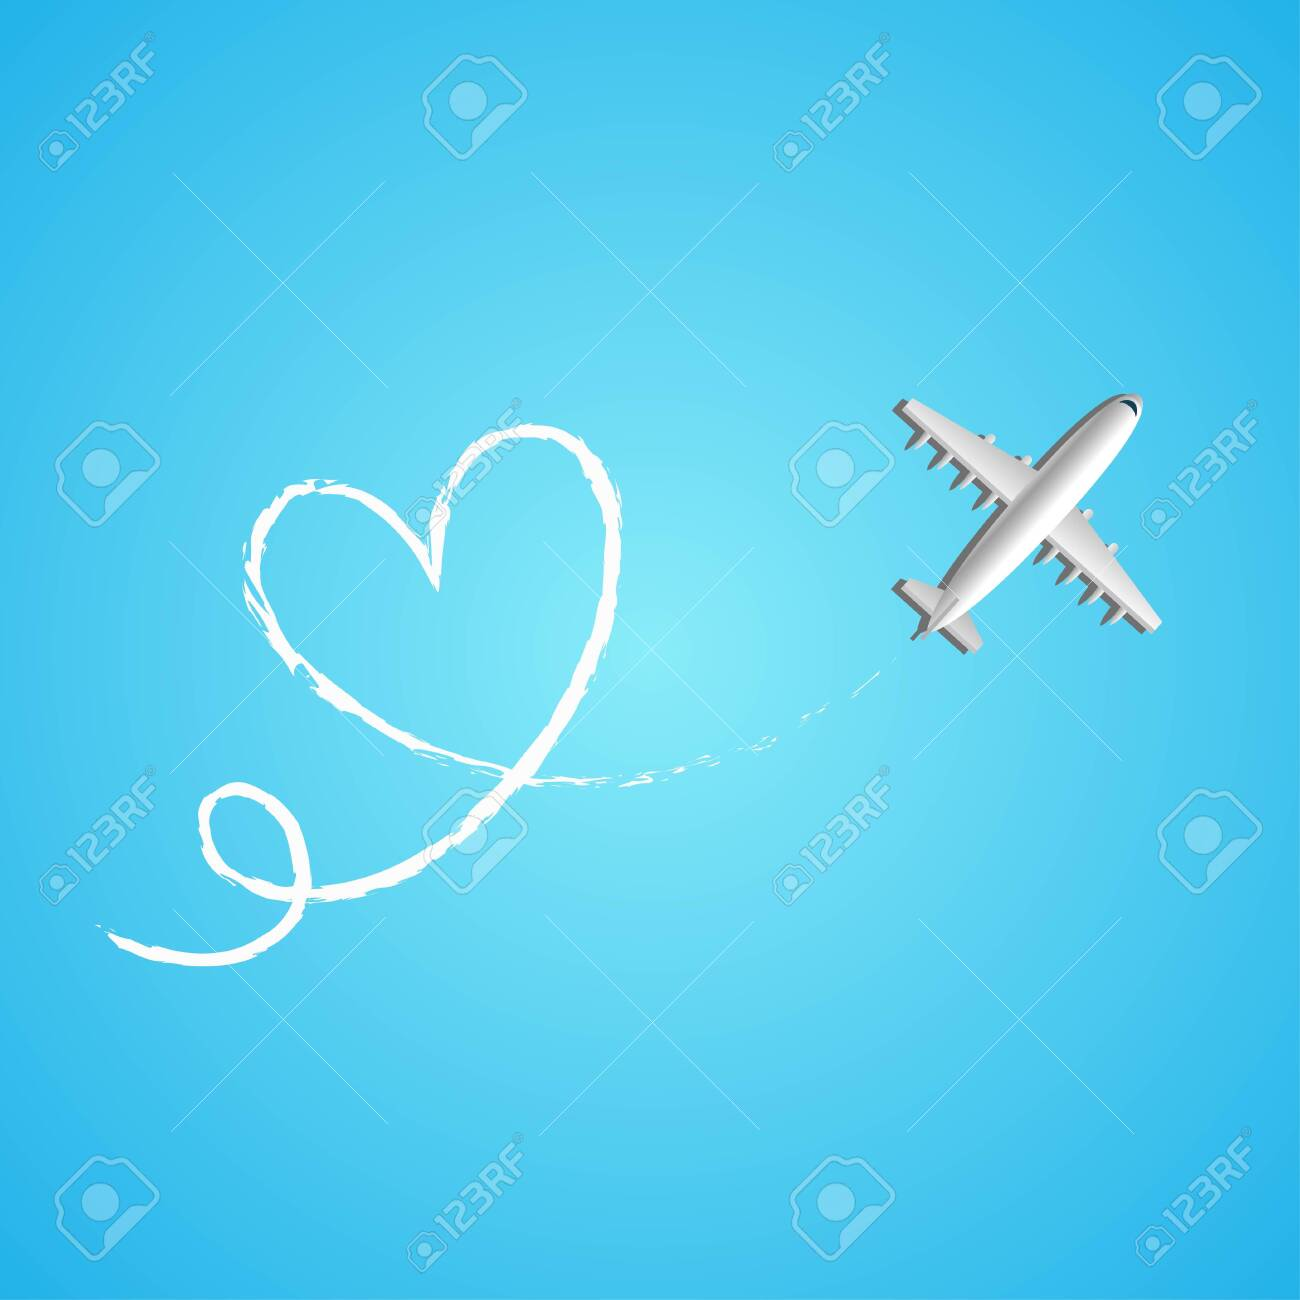 Love travel concept illustration in vector. Airplane flying and leave a white line on blue background. Vector illustration EPS 10. - 146542795